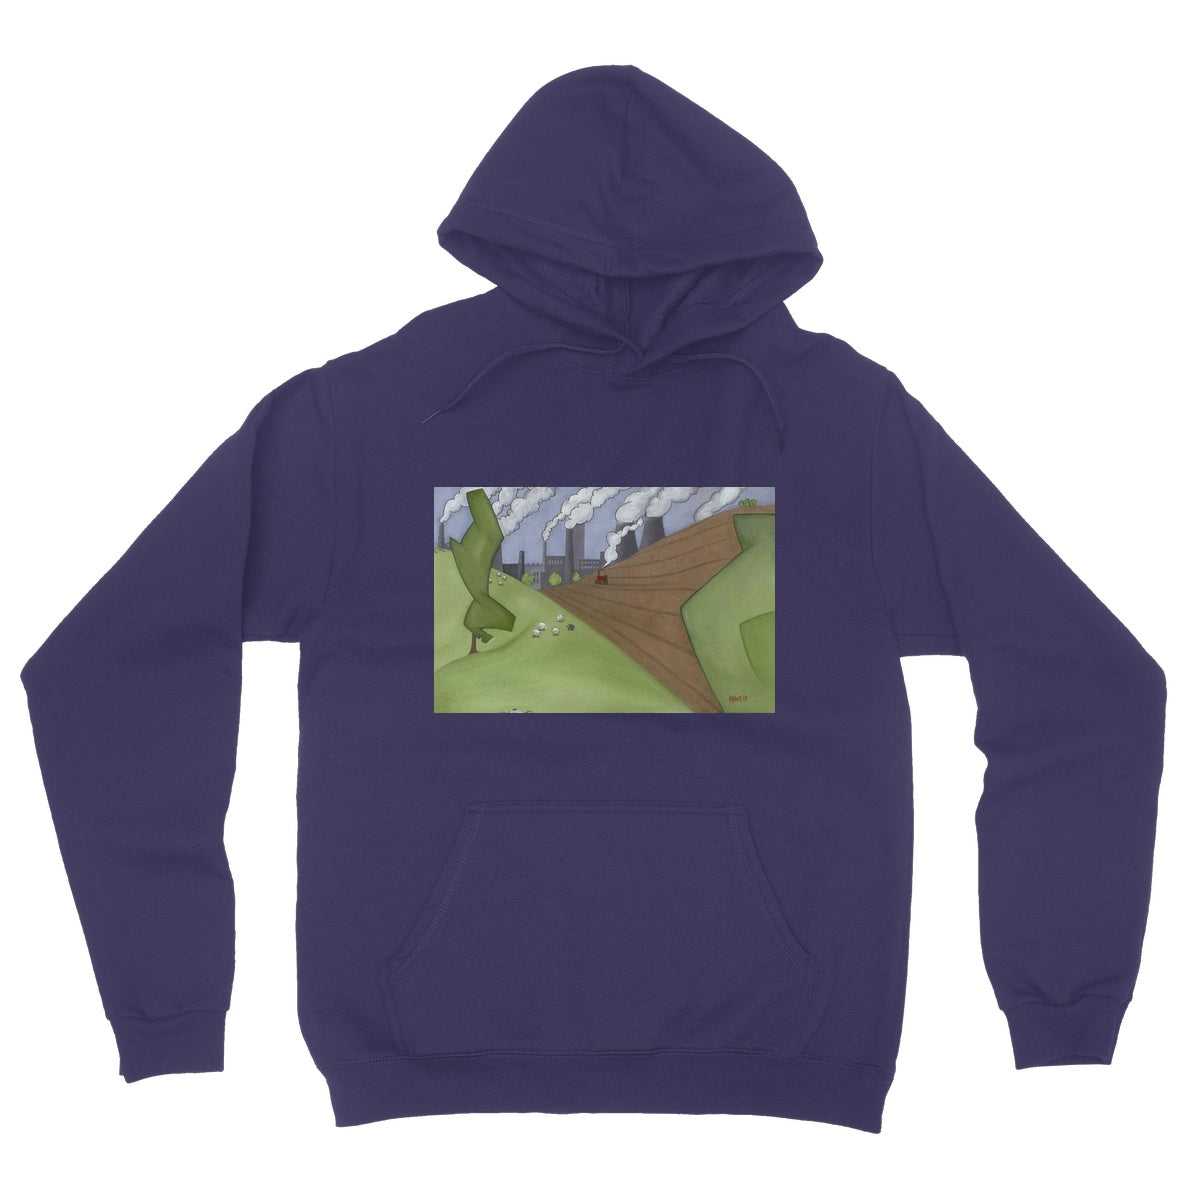 The Farm Fleece Pullover Hoodie